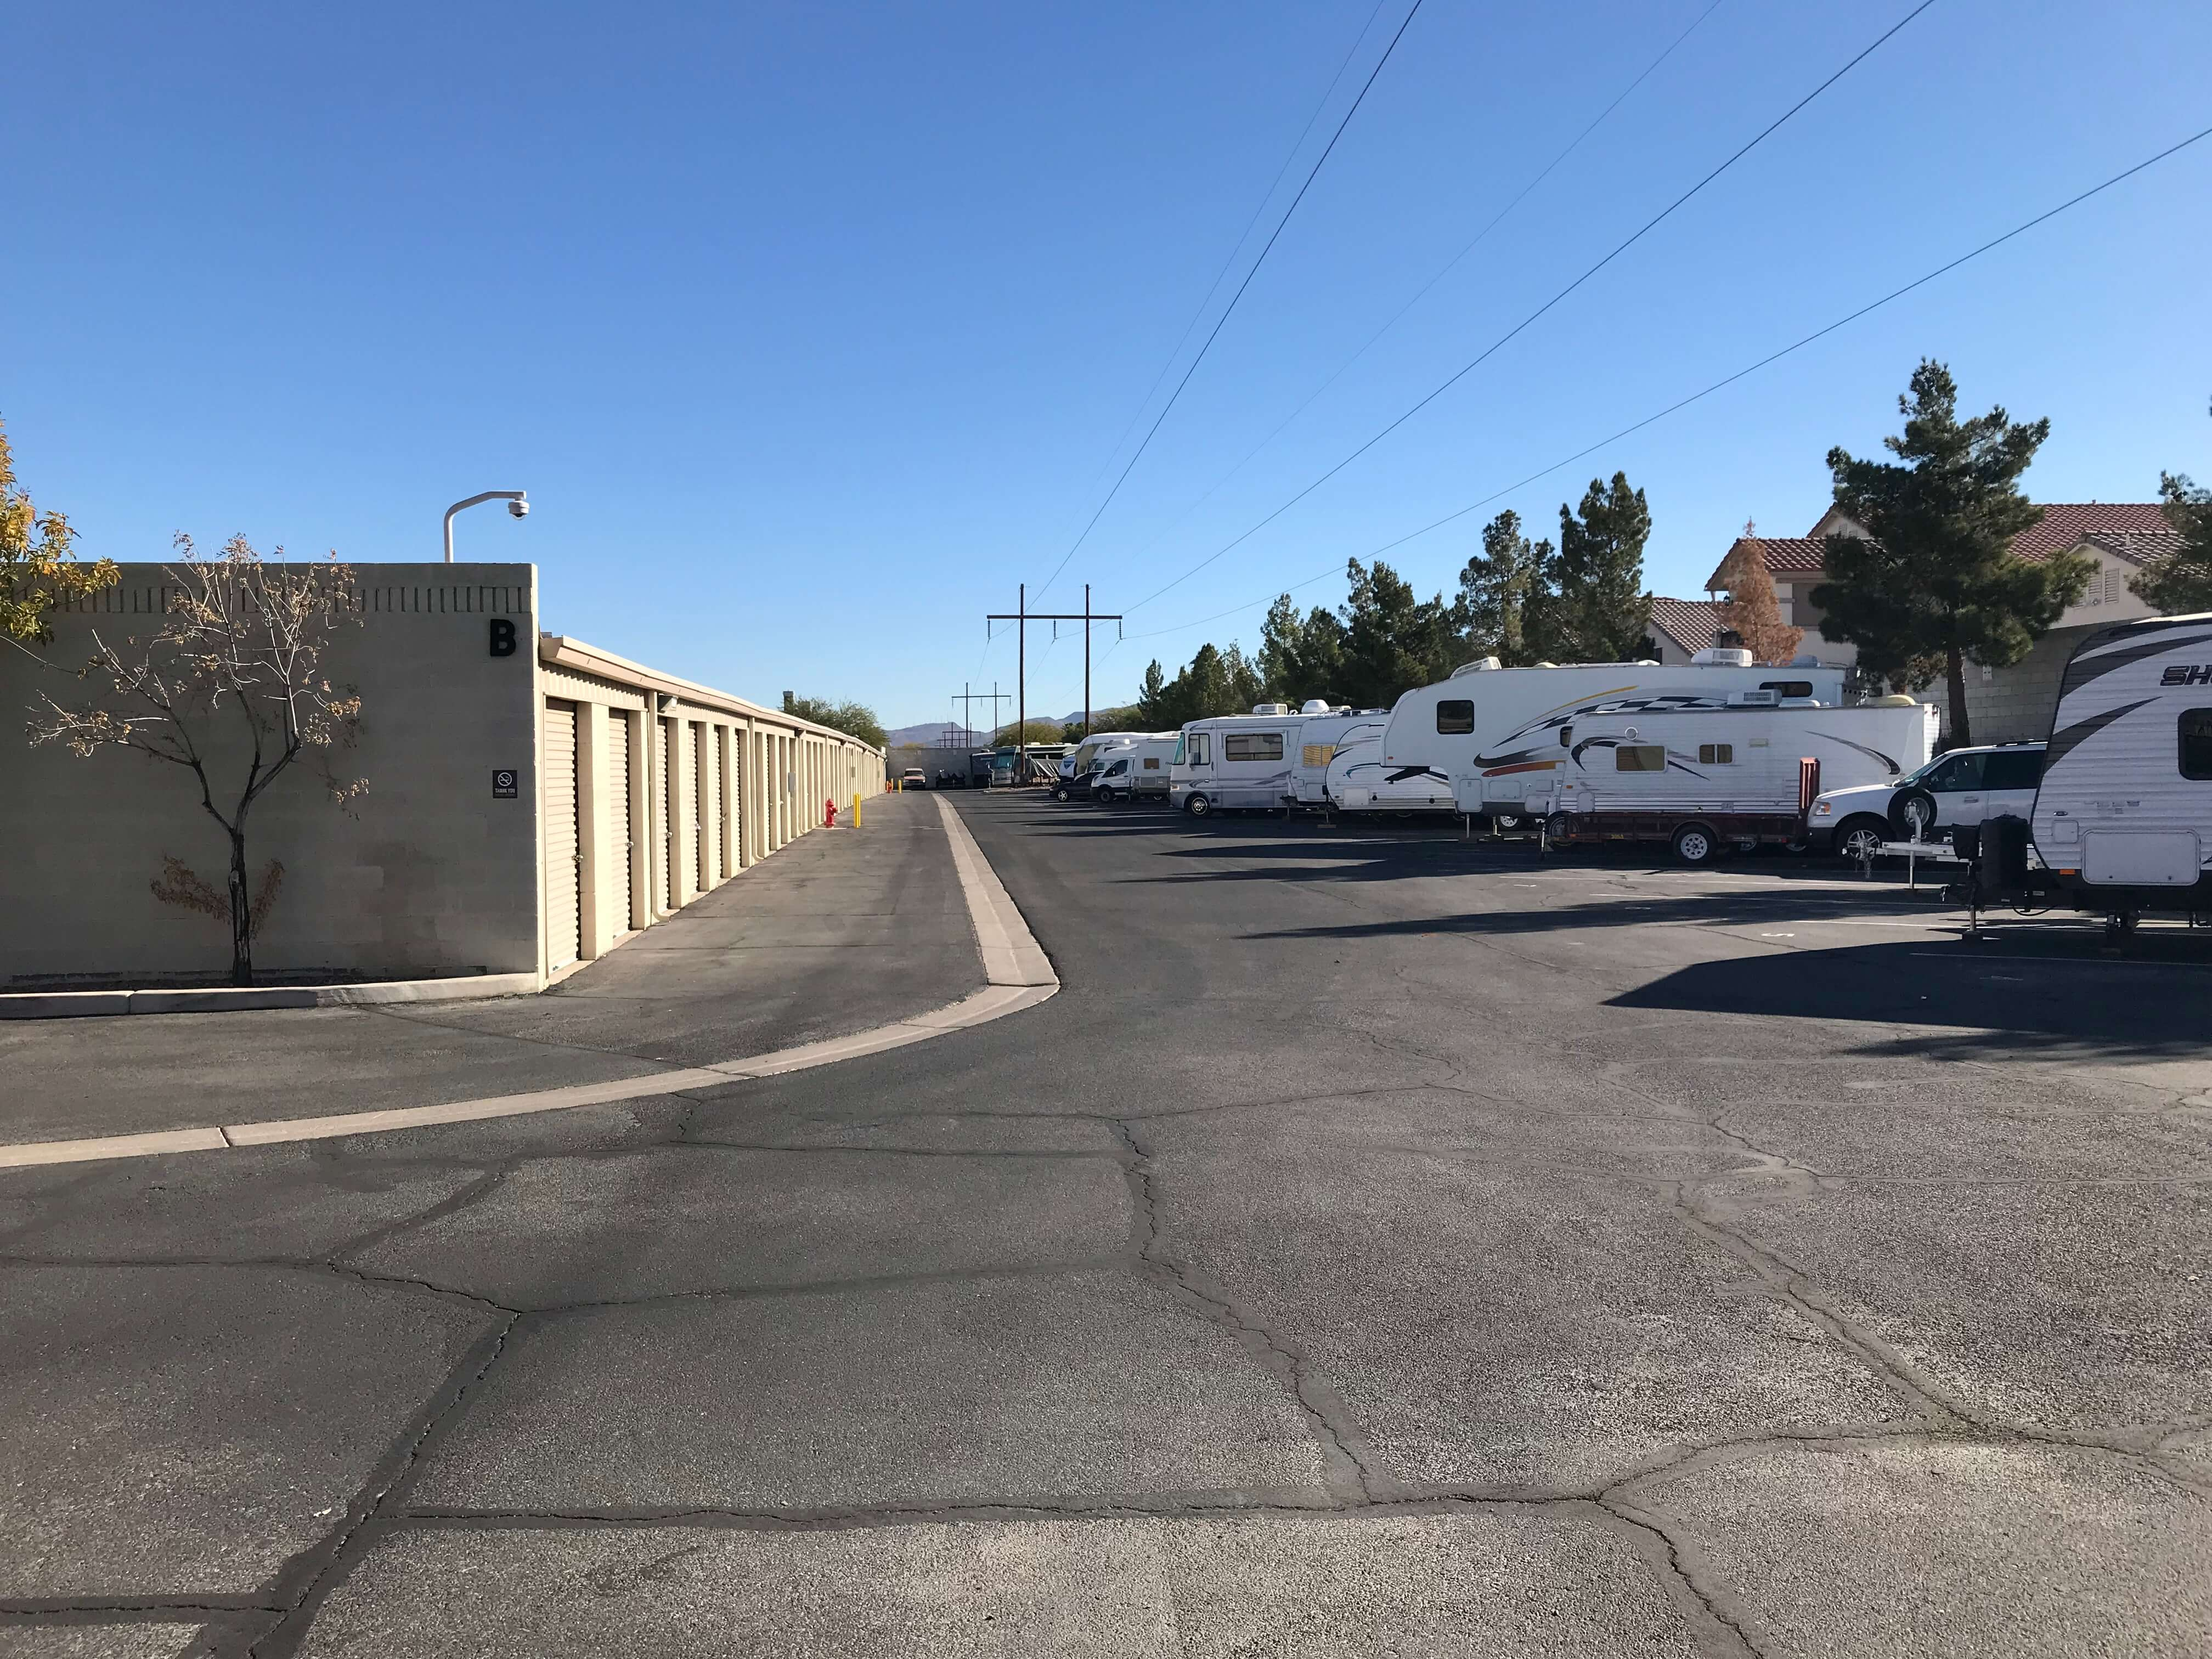 Outside row of storage units and RV parking at Smart Stop self storage facility located at 9890 Pollock Drive, Las Vegas Nevada